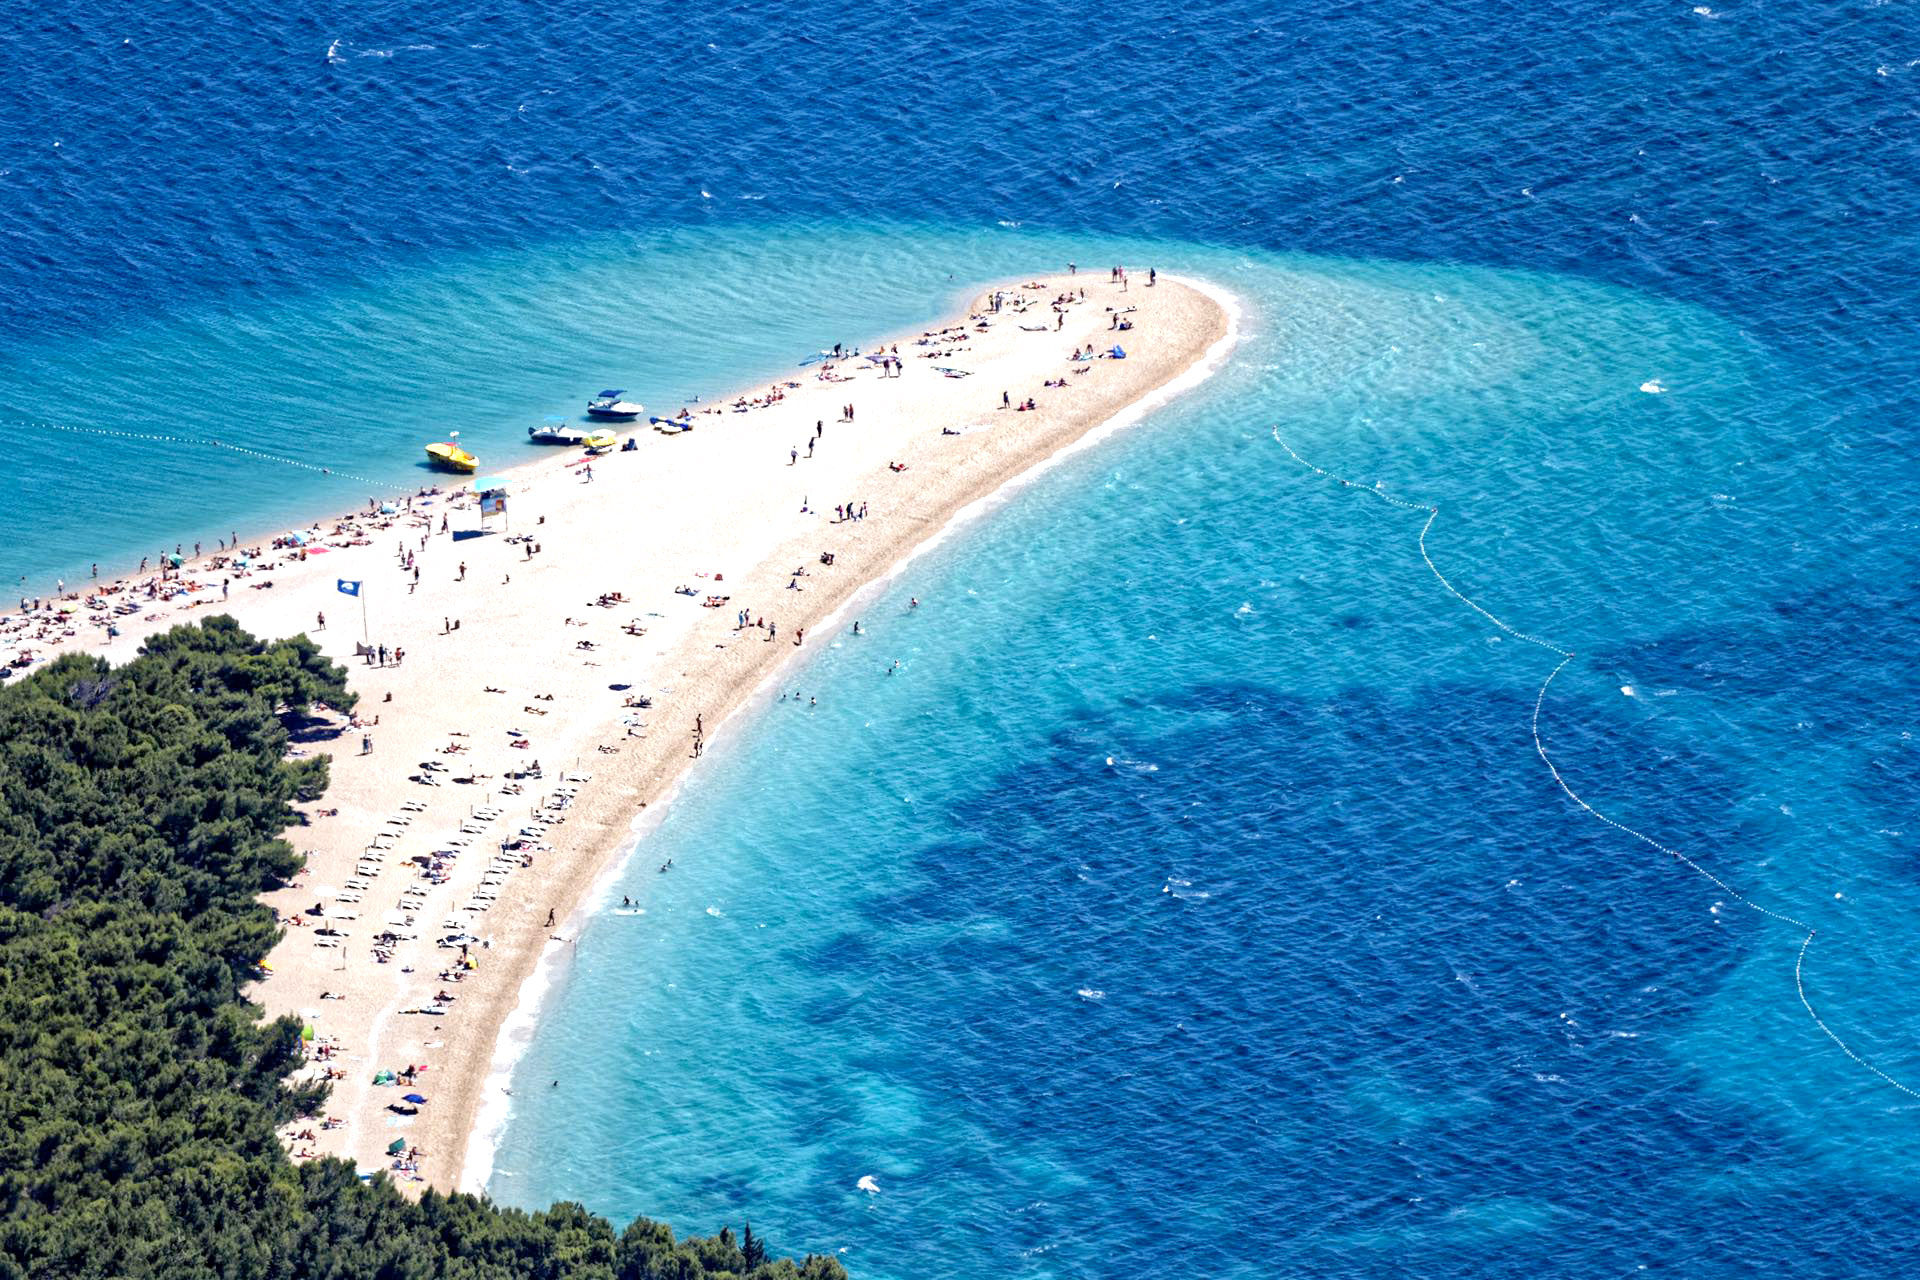 Aerial view of a large sandspit extending out into the ocean, Zlatni Rat Beach, Croatia.